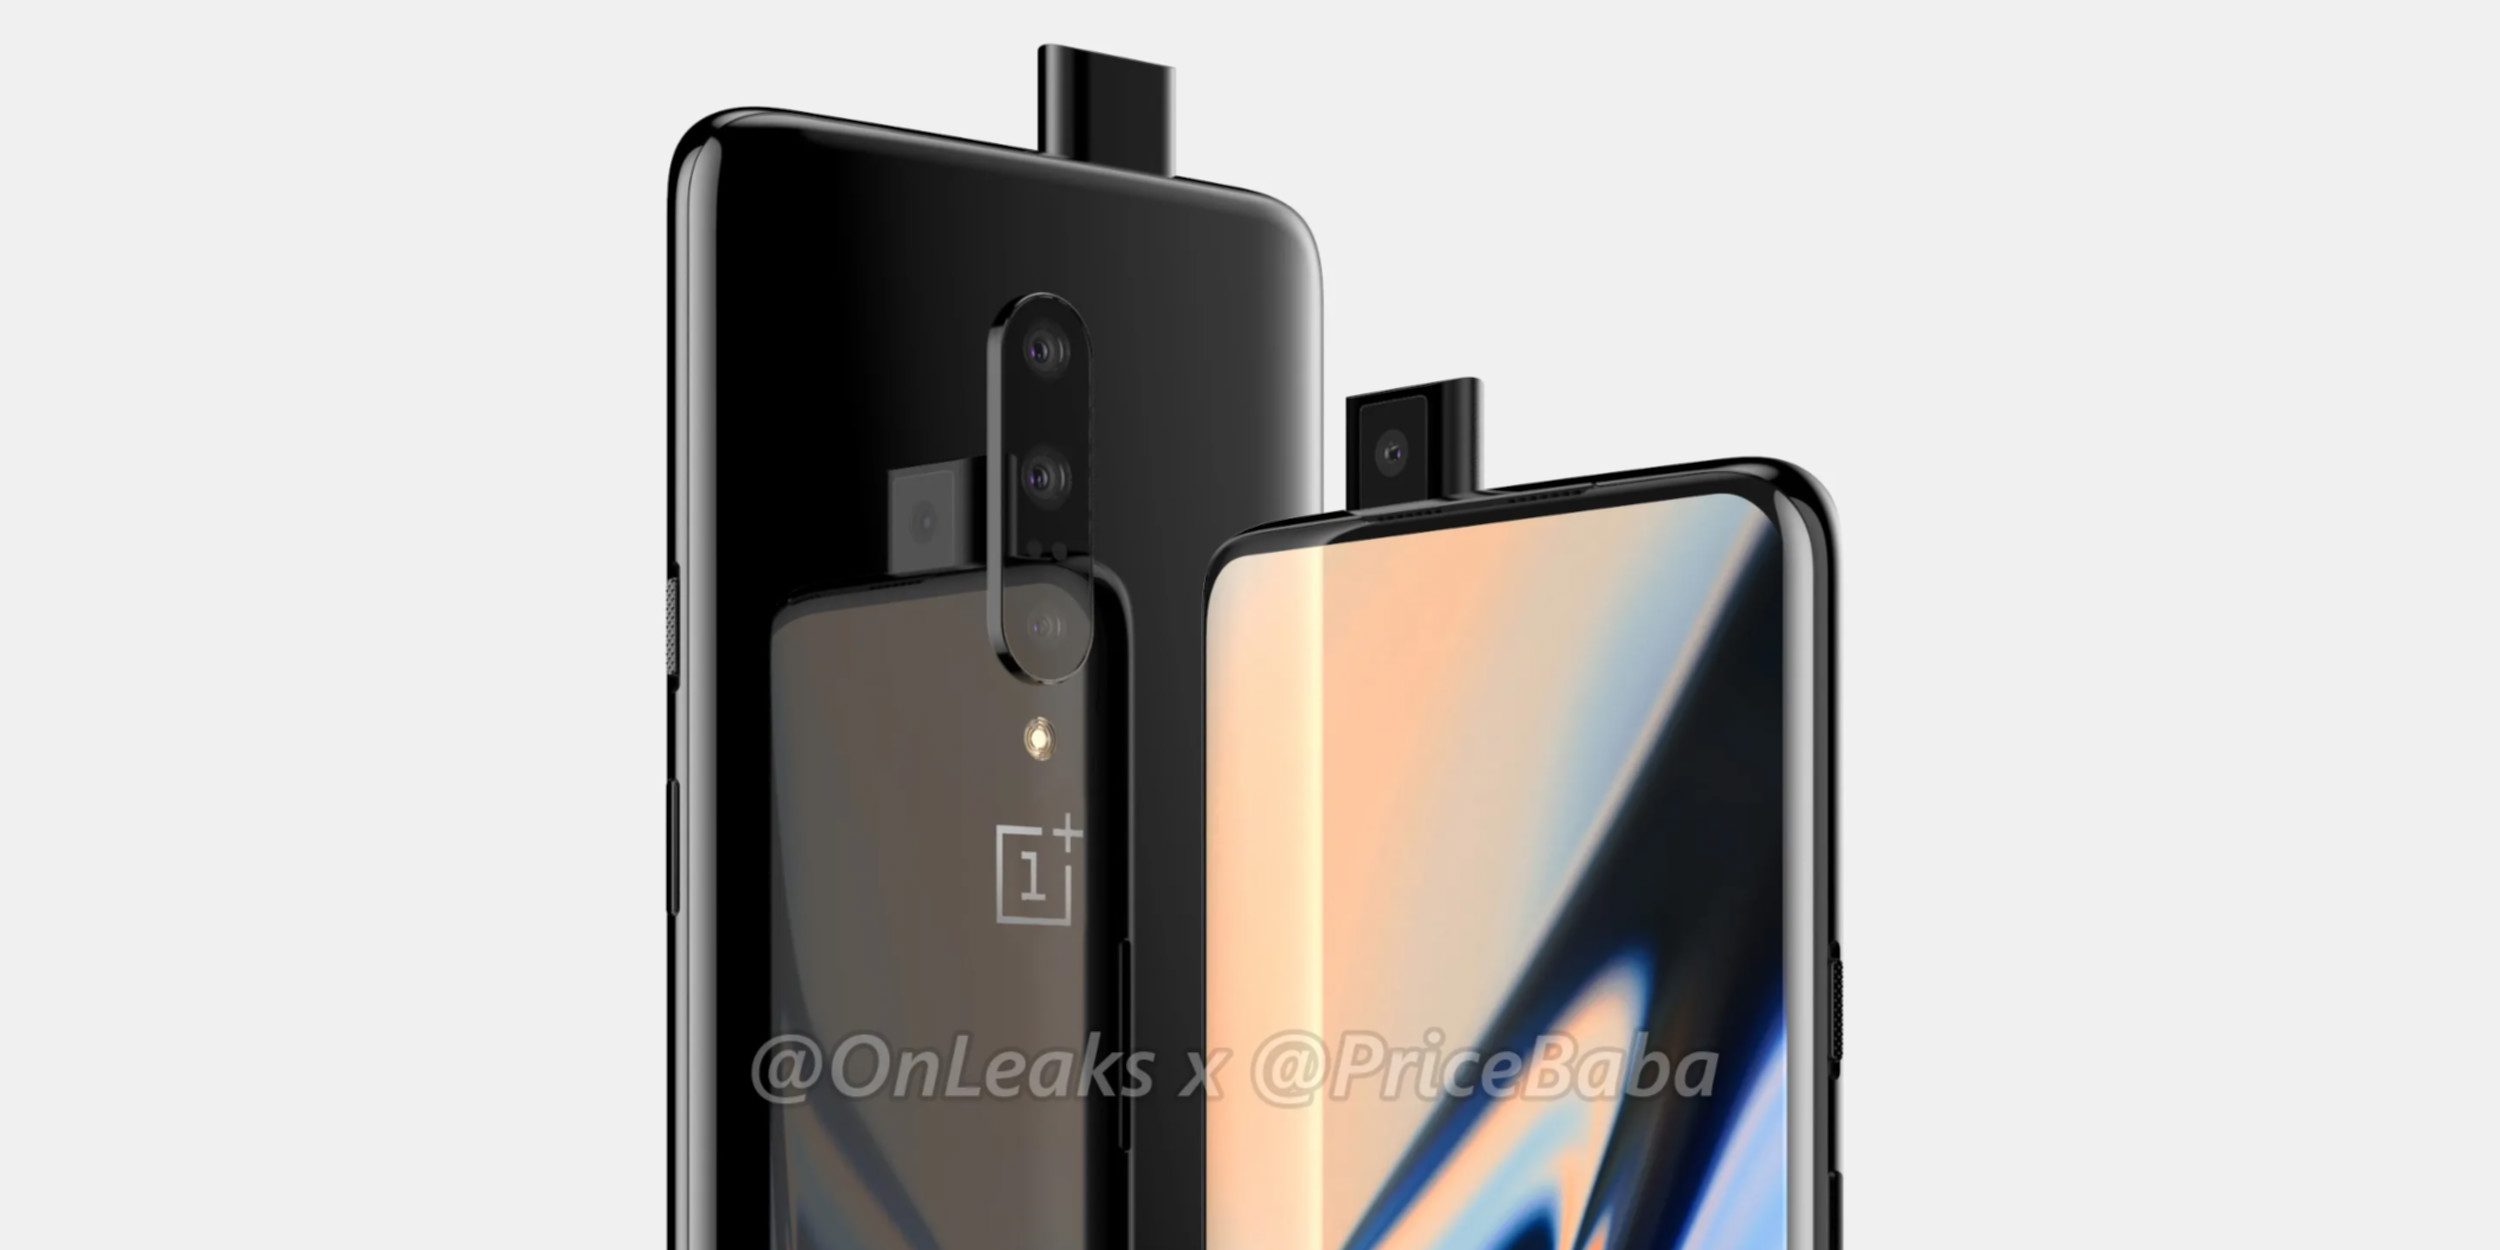 OnePlus 7 Pro leak details QHD+ 90Hz display, larger battery, stereo speakers